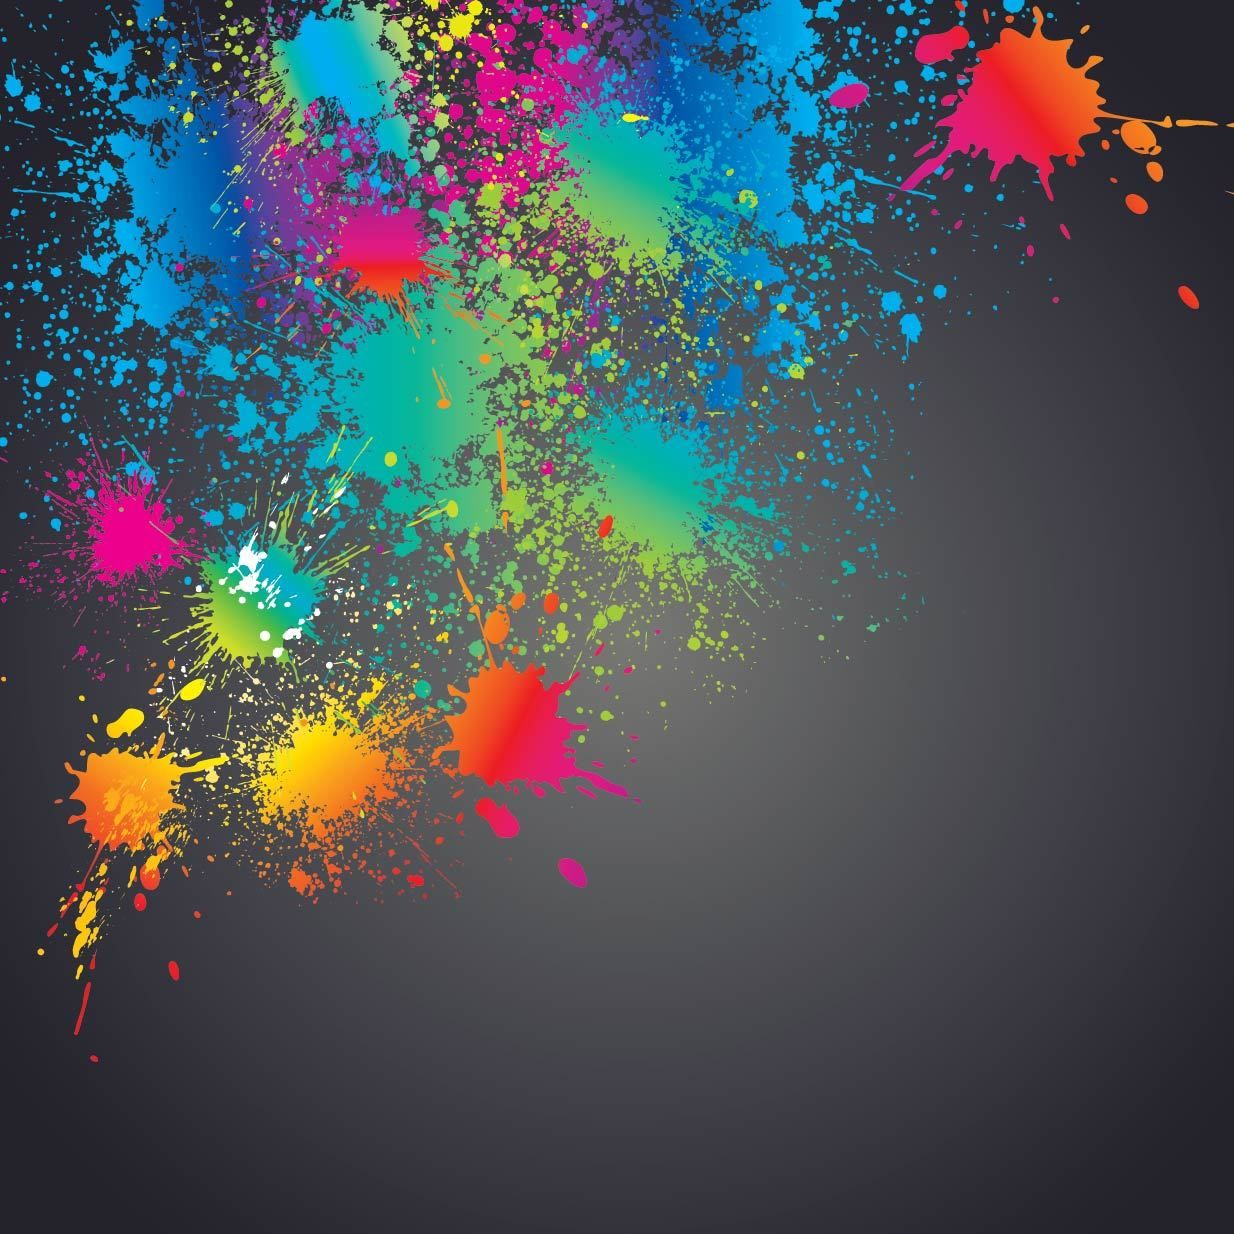 Colorful Splashed Paint Splatter Background - Vector download